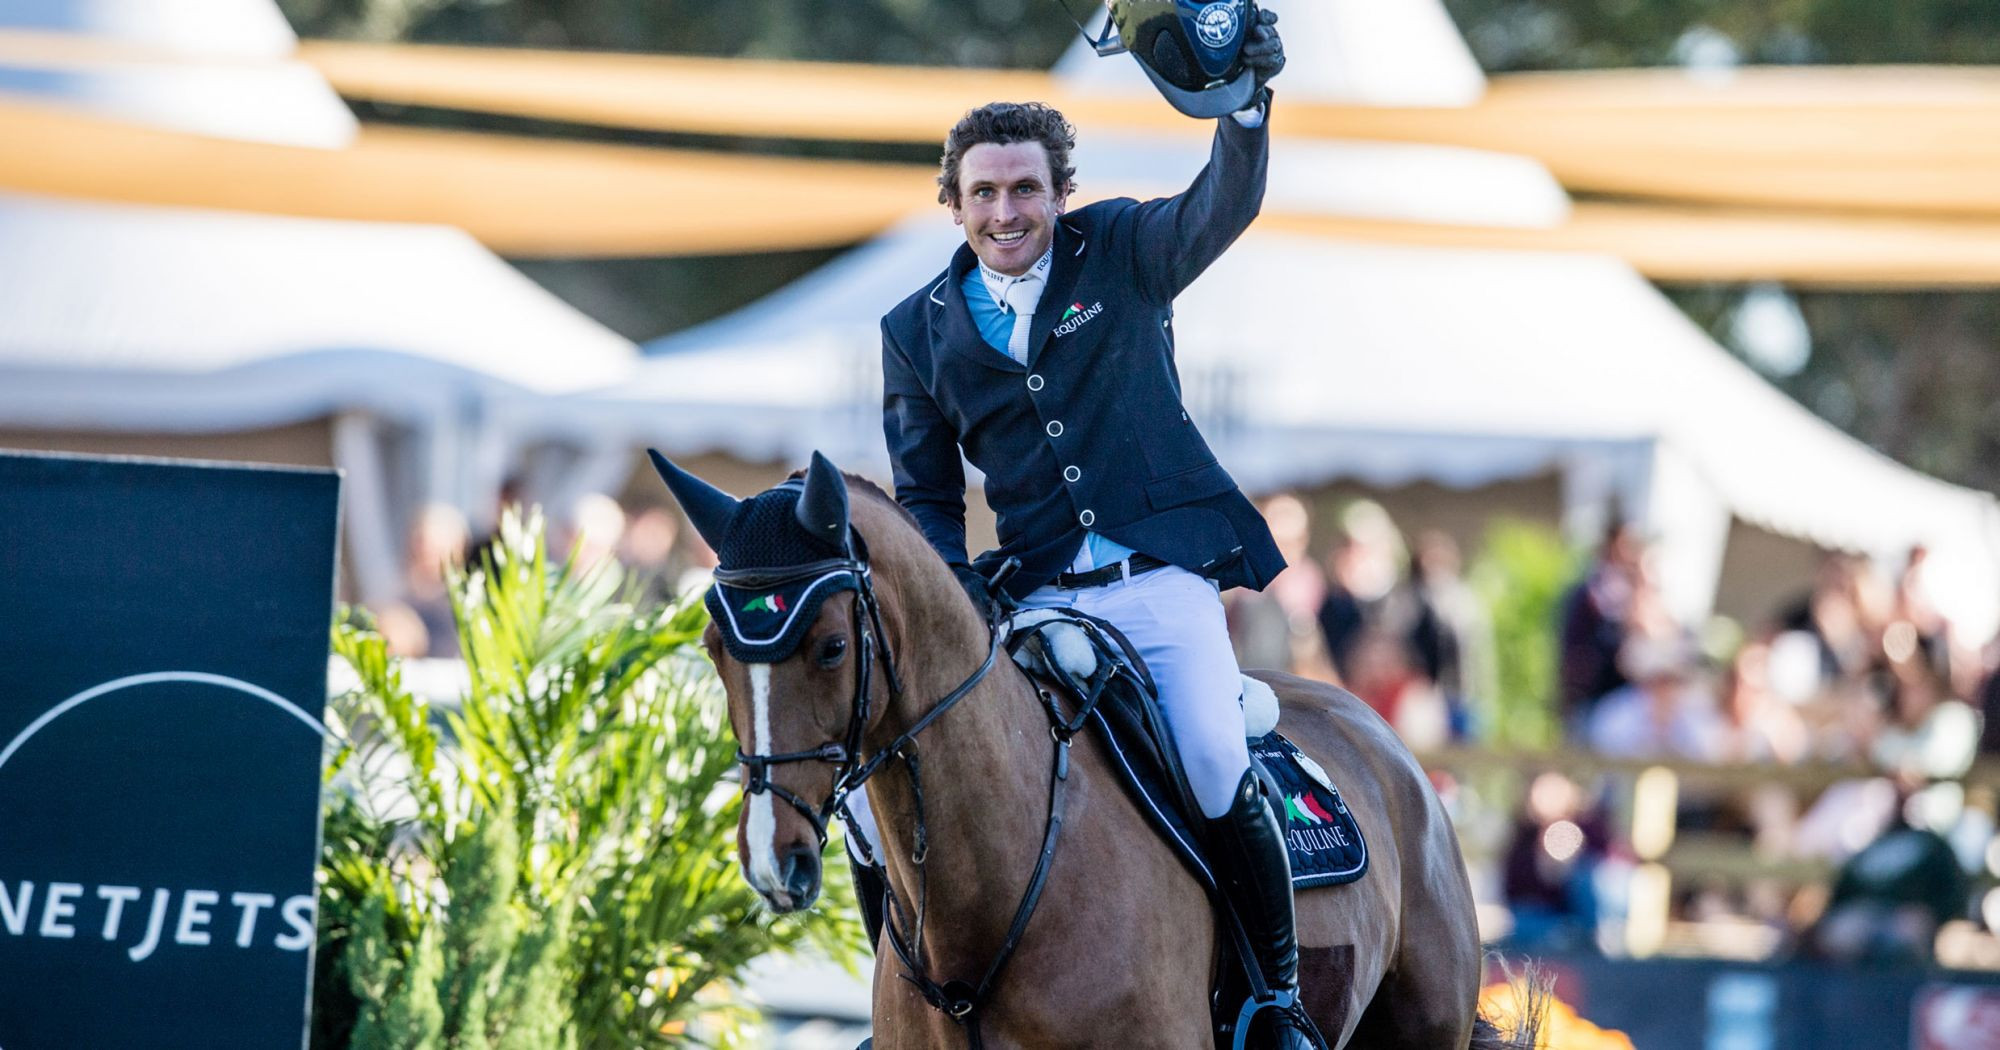 Kenny triumphs at FEI Jumping World Cup in Wellington